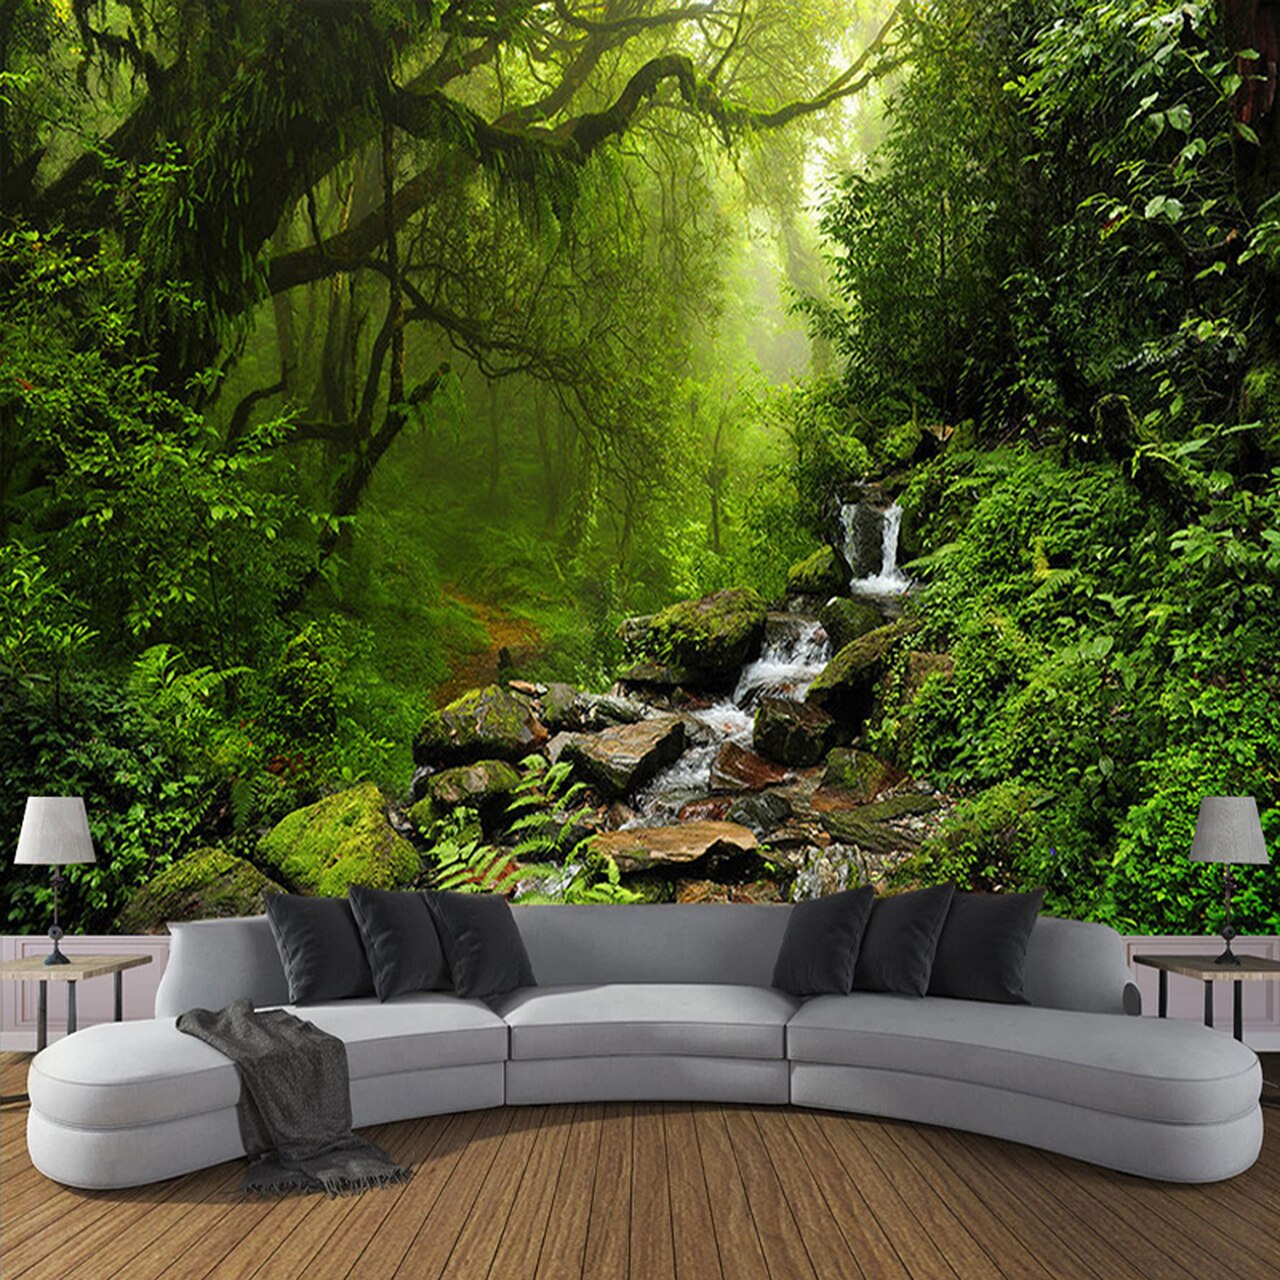 Custom 3d Wall Mural Wallpaper For Bedroom Photo Background - United Arab Emirates Forest - HD Wallpaper